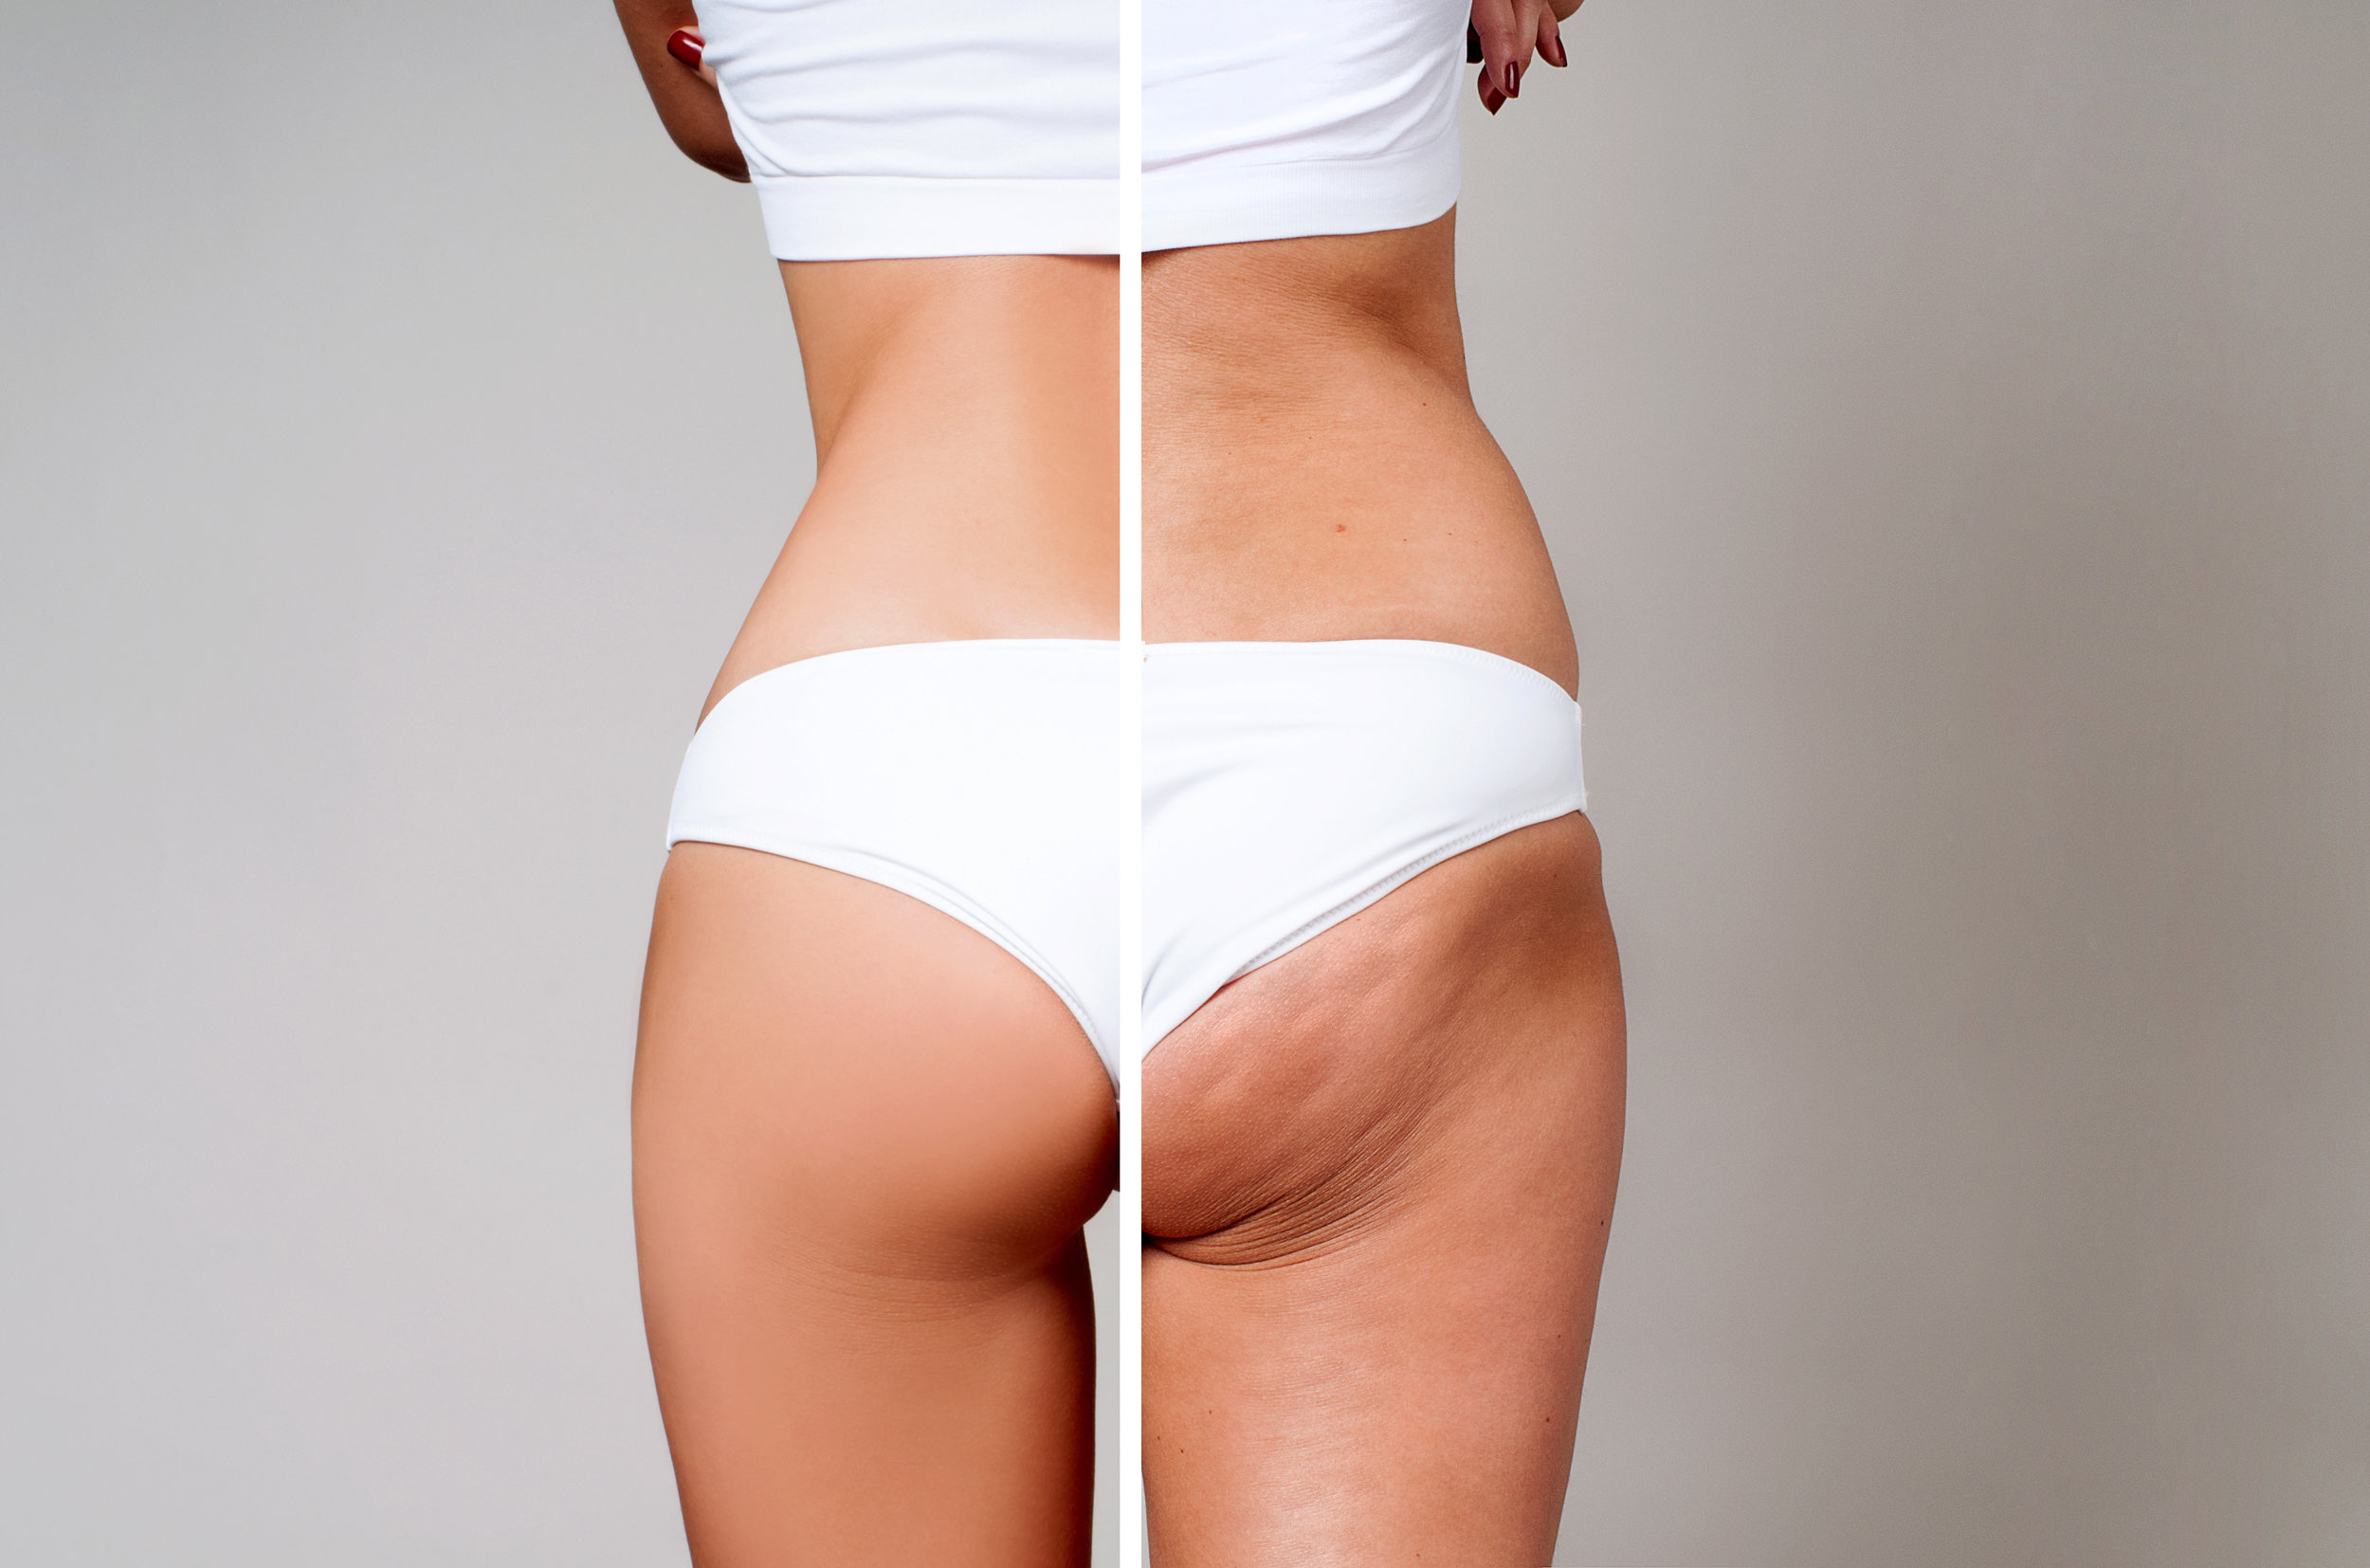 - The solution to cellulite doesn't come in a jar of cellulite cream or a cellulite exercise program. (If the solution to cellulite were that simple, no woman would have cellulite). Research has suggested that acoustic waves (Cellupulse) are effective in disrupting the sclerotic fibrous tissue responsible for the uneven appearance of cellulite. Acoustic wave therapy has also been demonstrated to increase the thickness of the reticular dermis and decrease the protrusion of fat into the area.